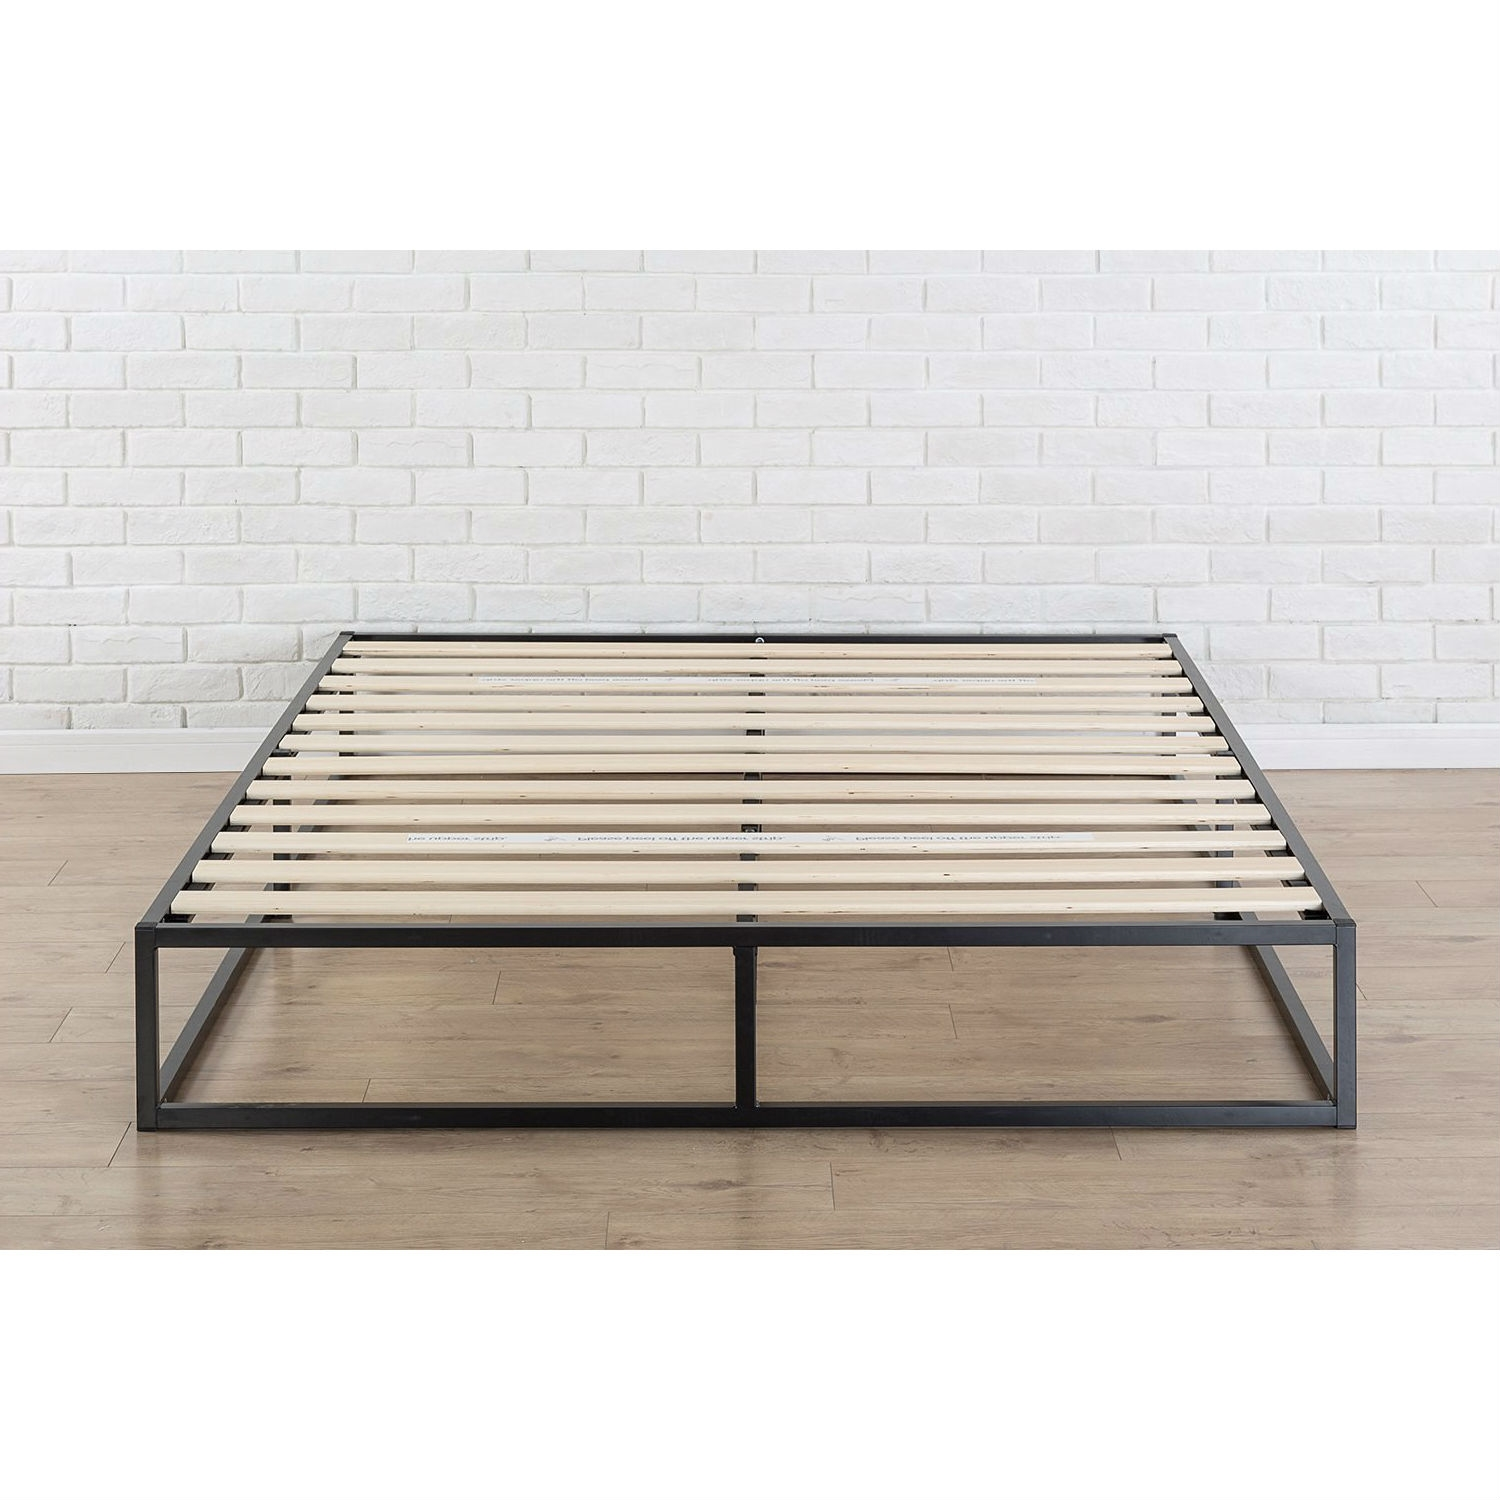 heavy duty steel small decorative indooroutdoor firewood.htm king size modern 10 inch low profile metal platform bed frame with  king size modern 10 inch low profile